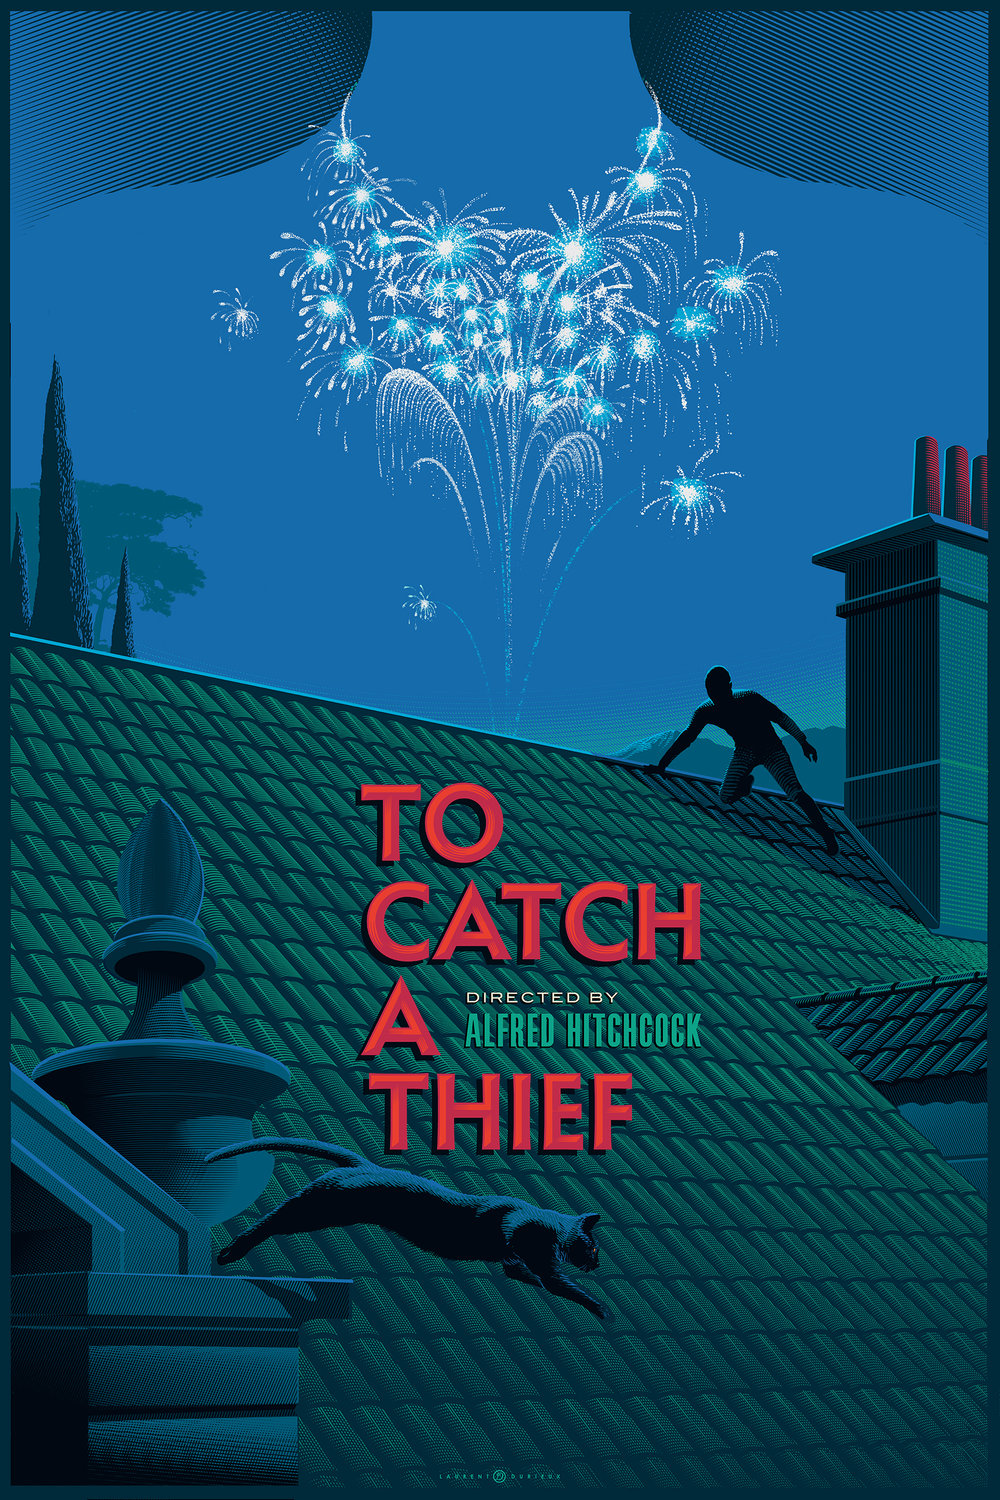 To Catch a Thief (1955, dir. Alfred Hitchcock) poster by Laurent Durieux, 2016